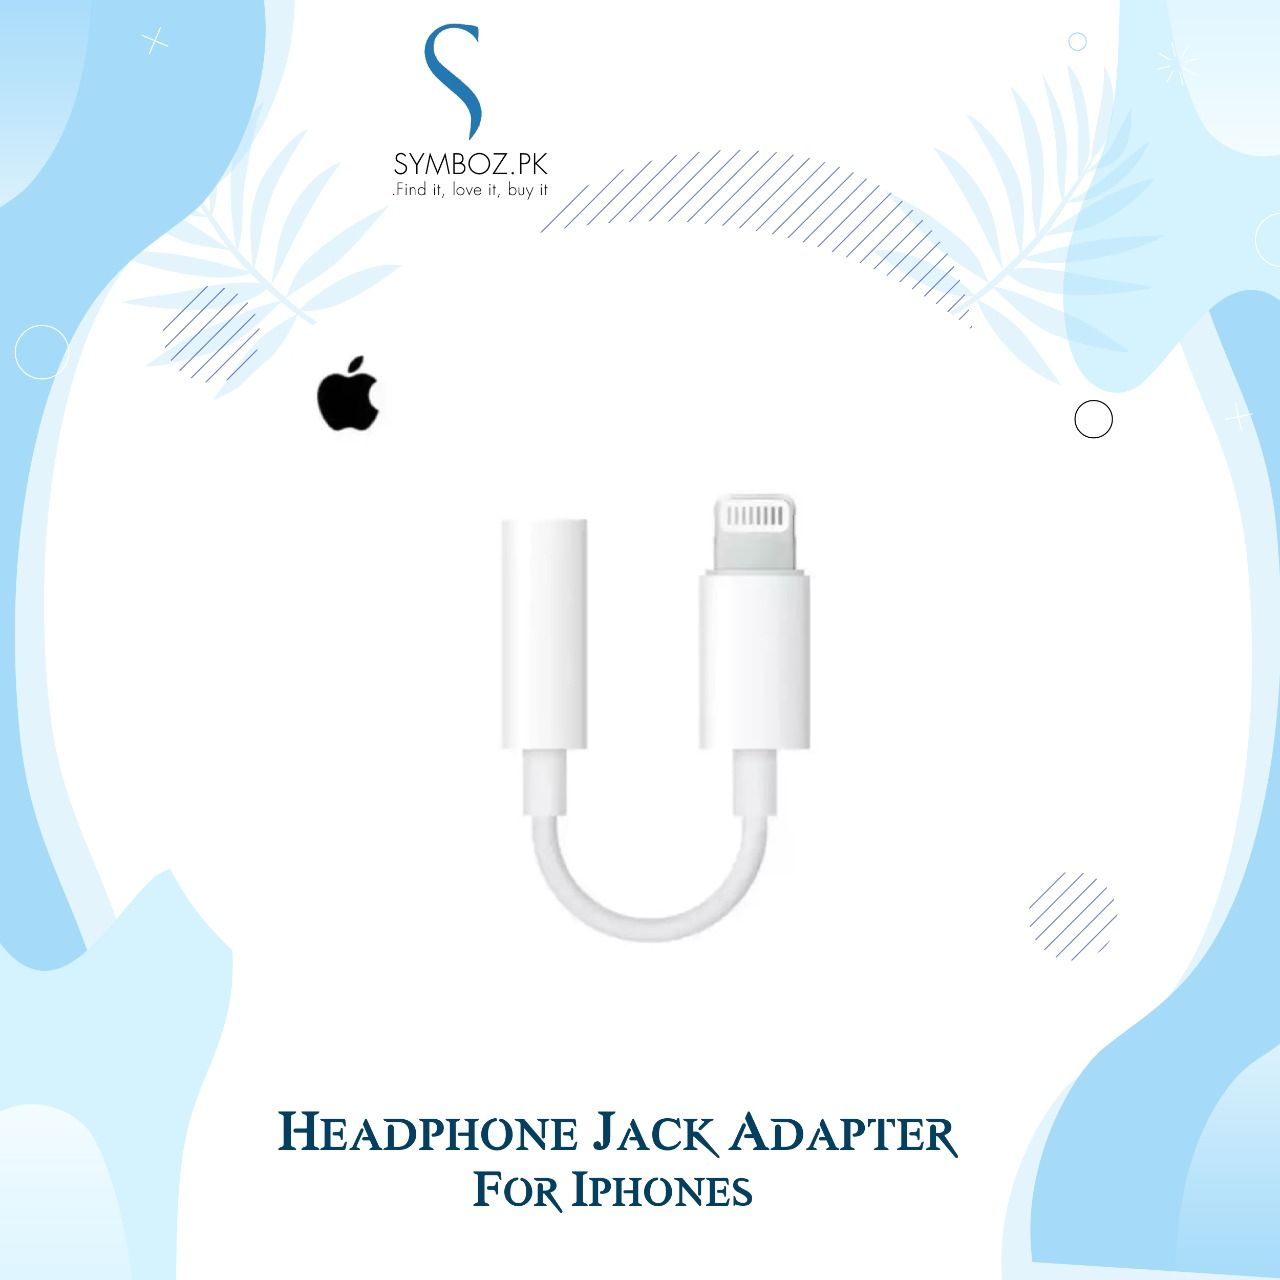 Ios 11 12 13 Headphone Adapter For Iphone 7 6 8 11 X Xs Xr Earphone Aux Adapter For Lightning Female To 3 5mm Iphone 7 Adapter Iphone 7 Iphone Price